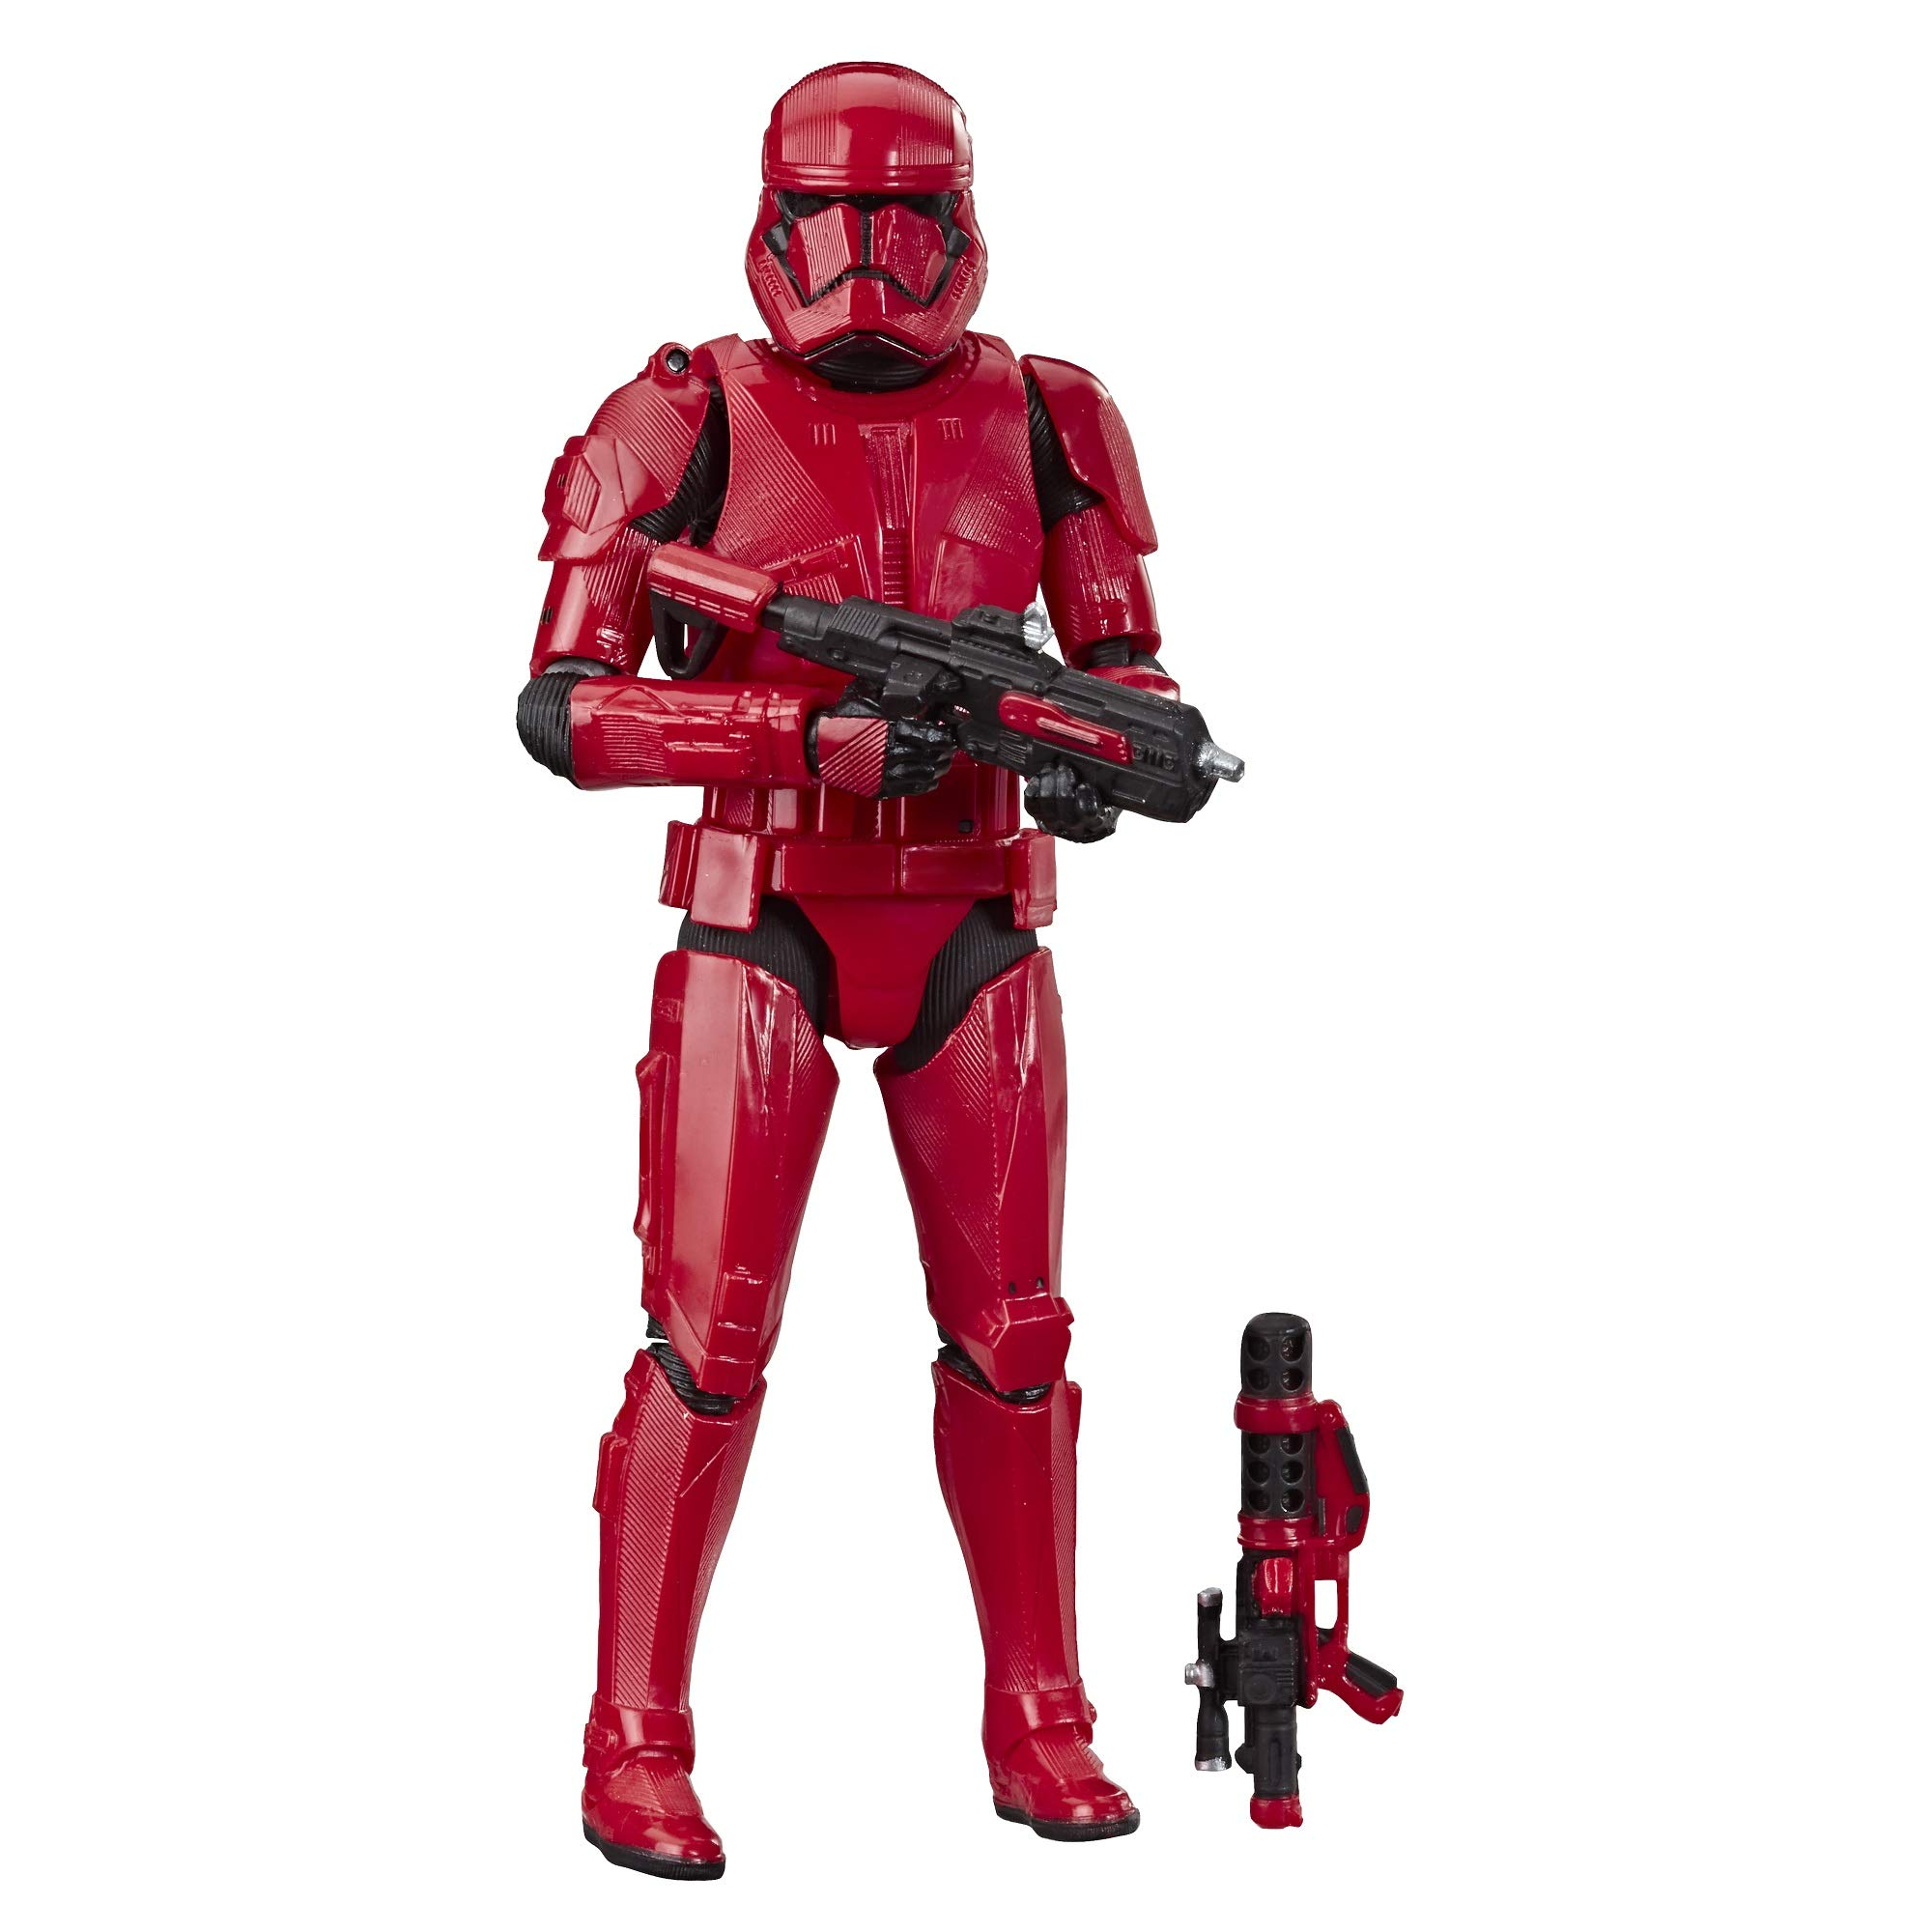 Star Wars The Black Series Sith Trooper Toy 6'' Scale The Rise of Skywalker Collectible Action Figure, Kids Ages 4 & Up by Star Wars